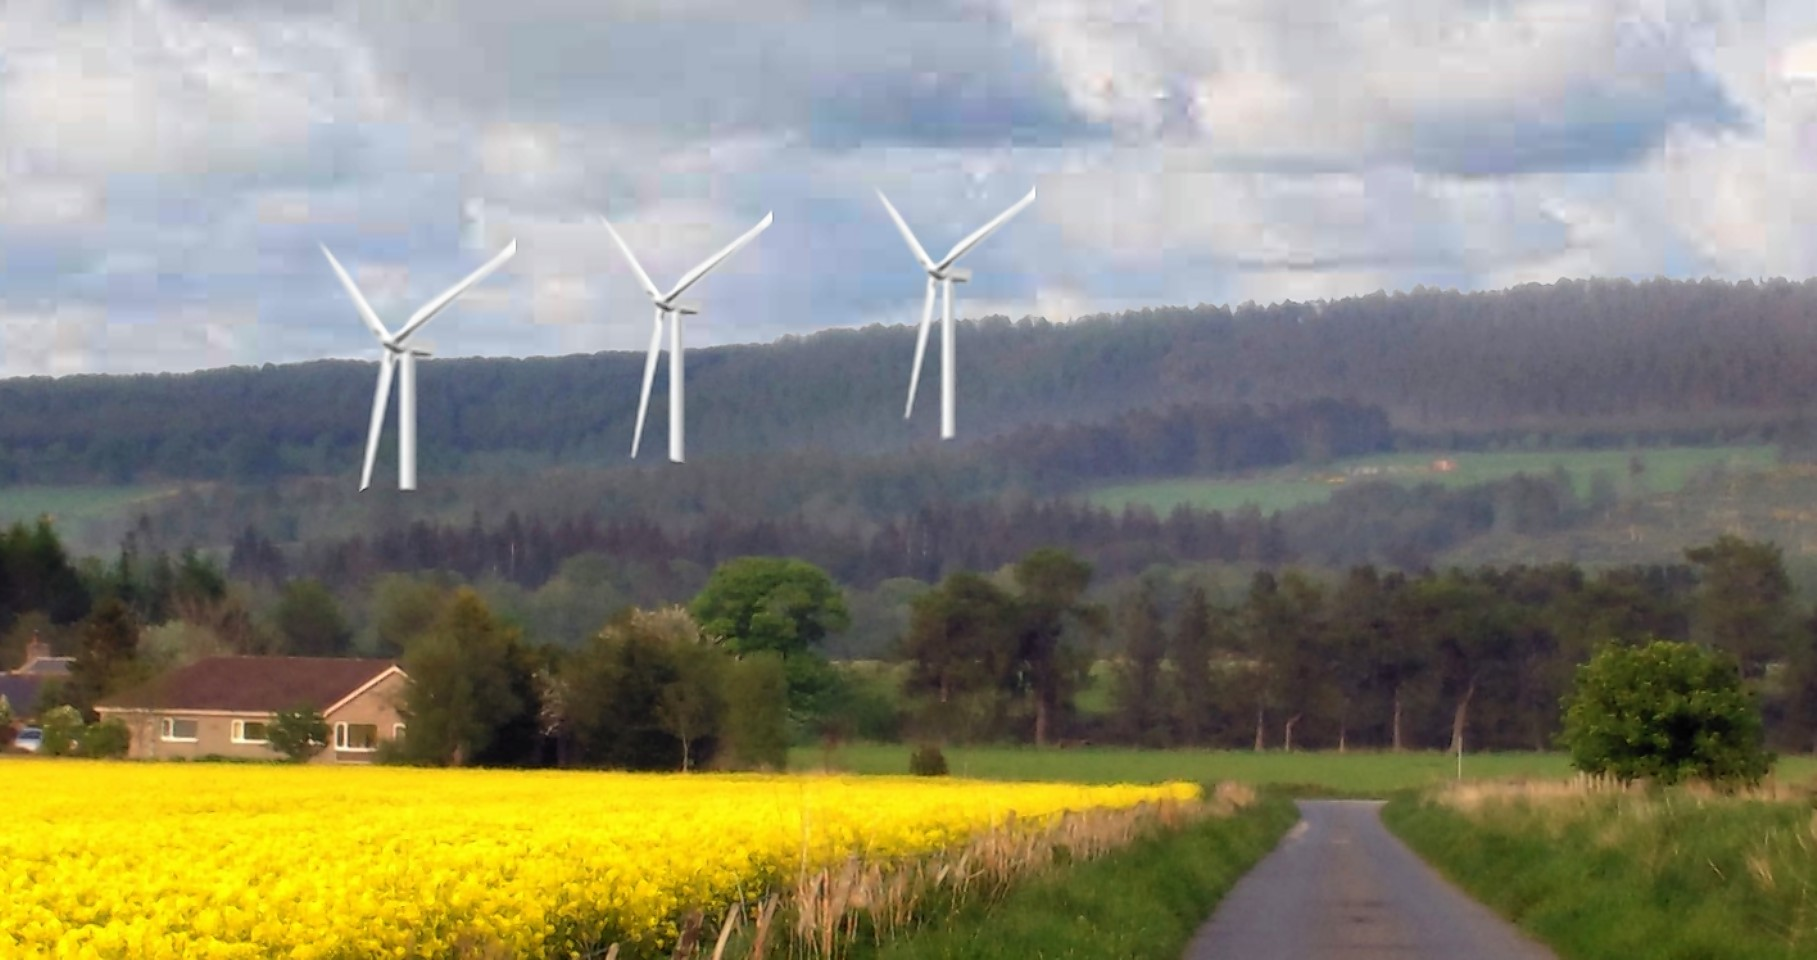 New map shows impact of wind turbines on north-east.